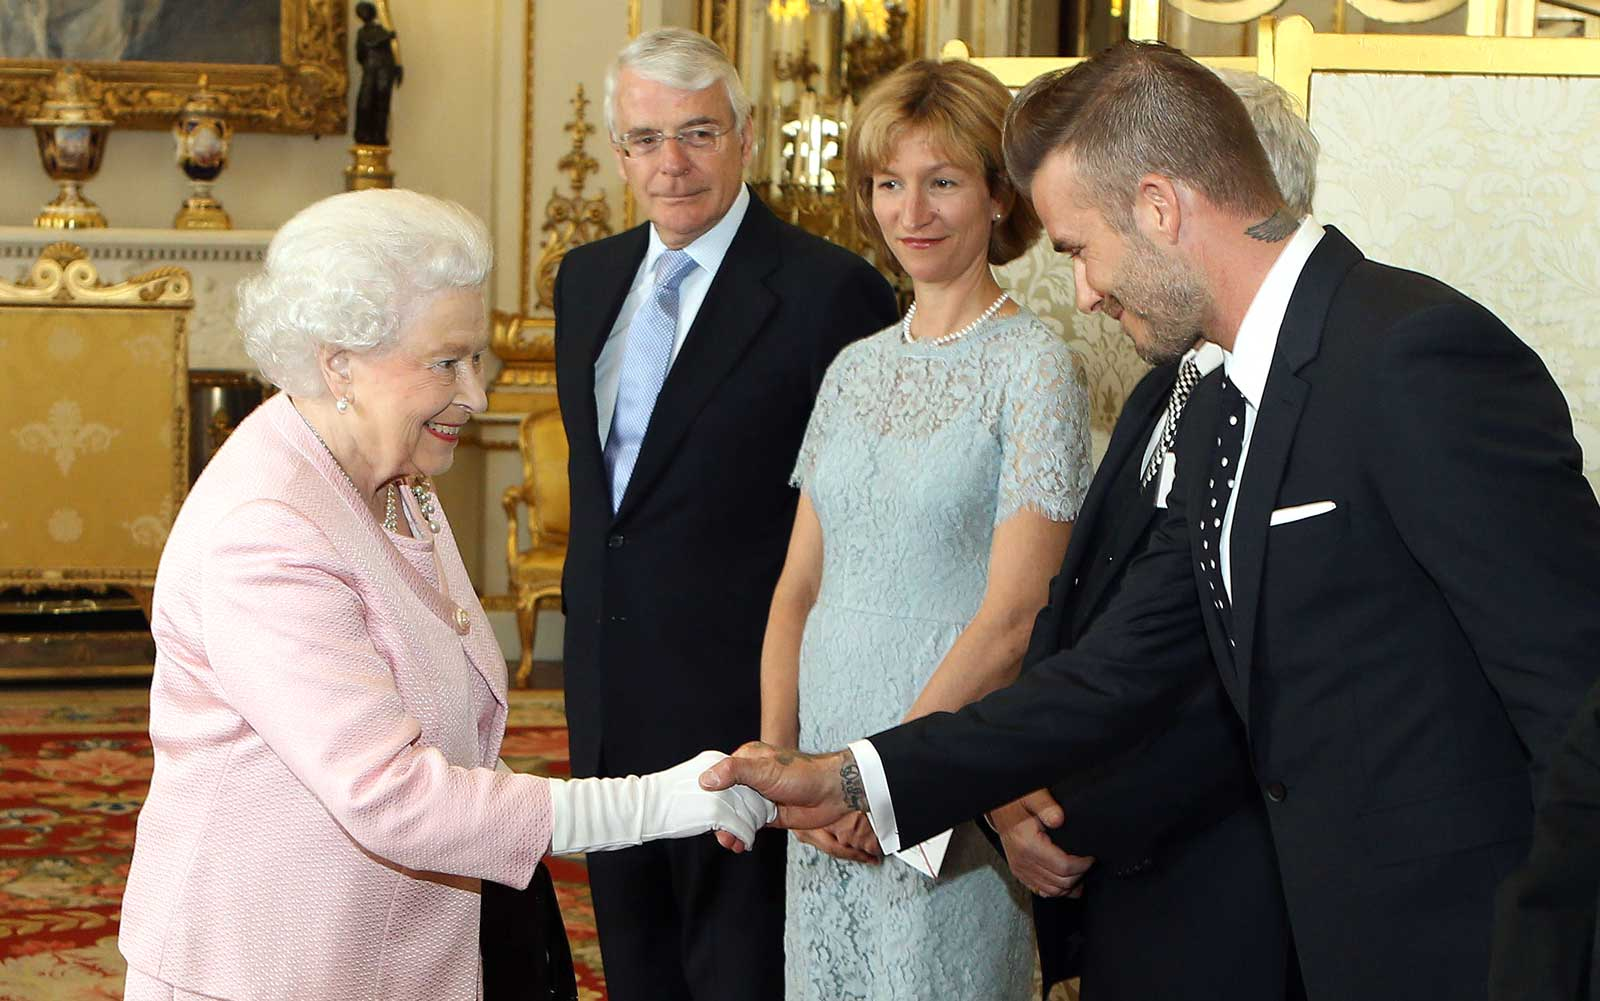 Britain's Queen Elizabeth II shakes hands with former England footballer David Beckham as in London on June 22, 2015